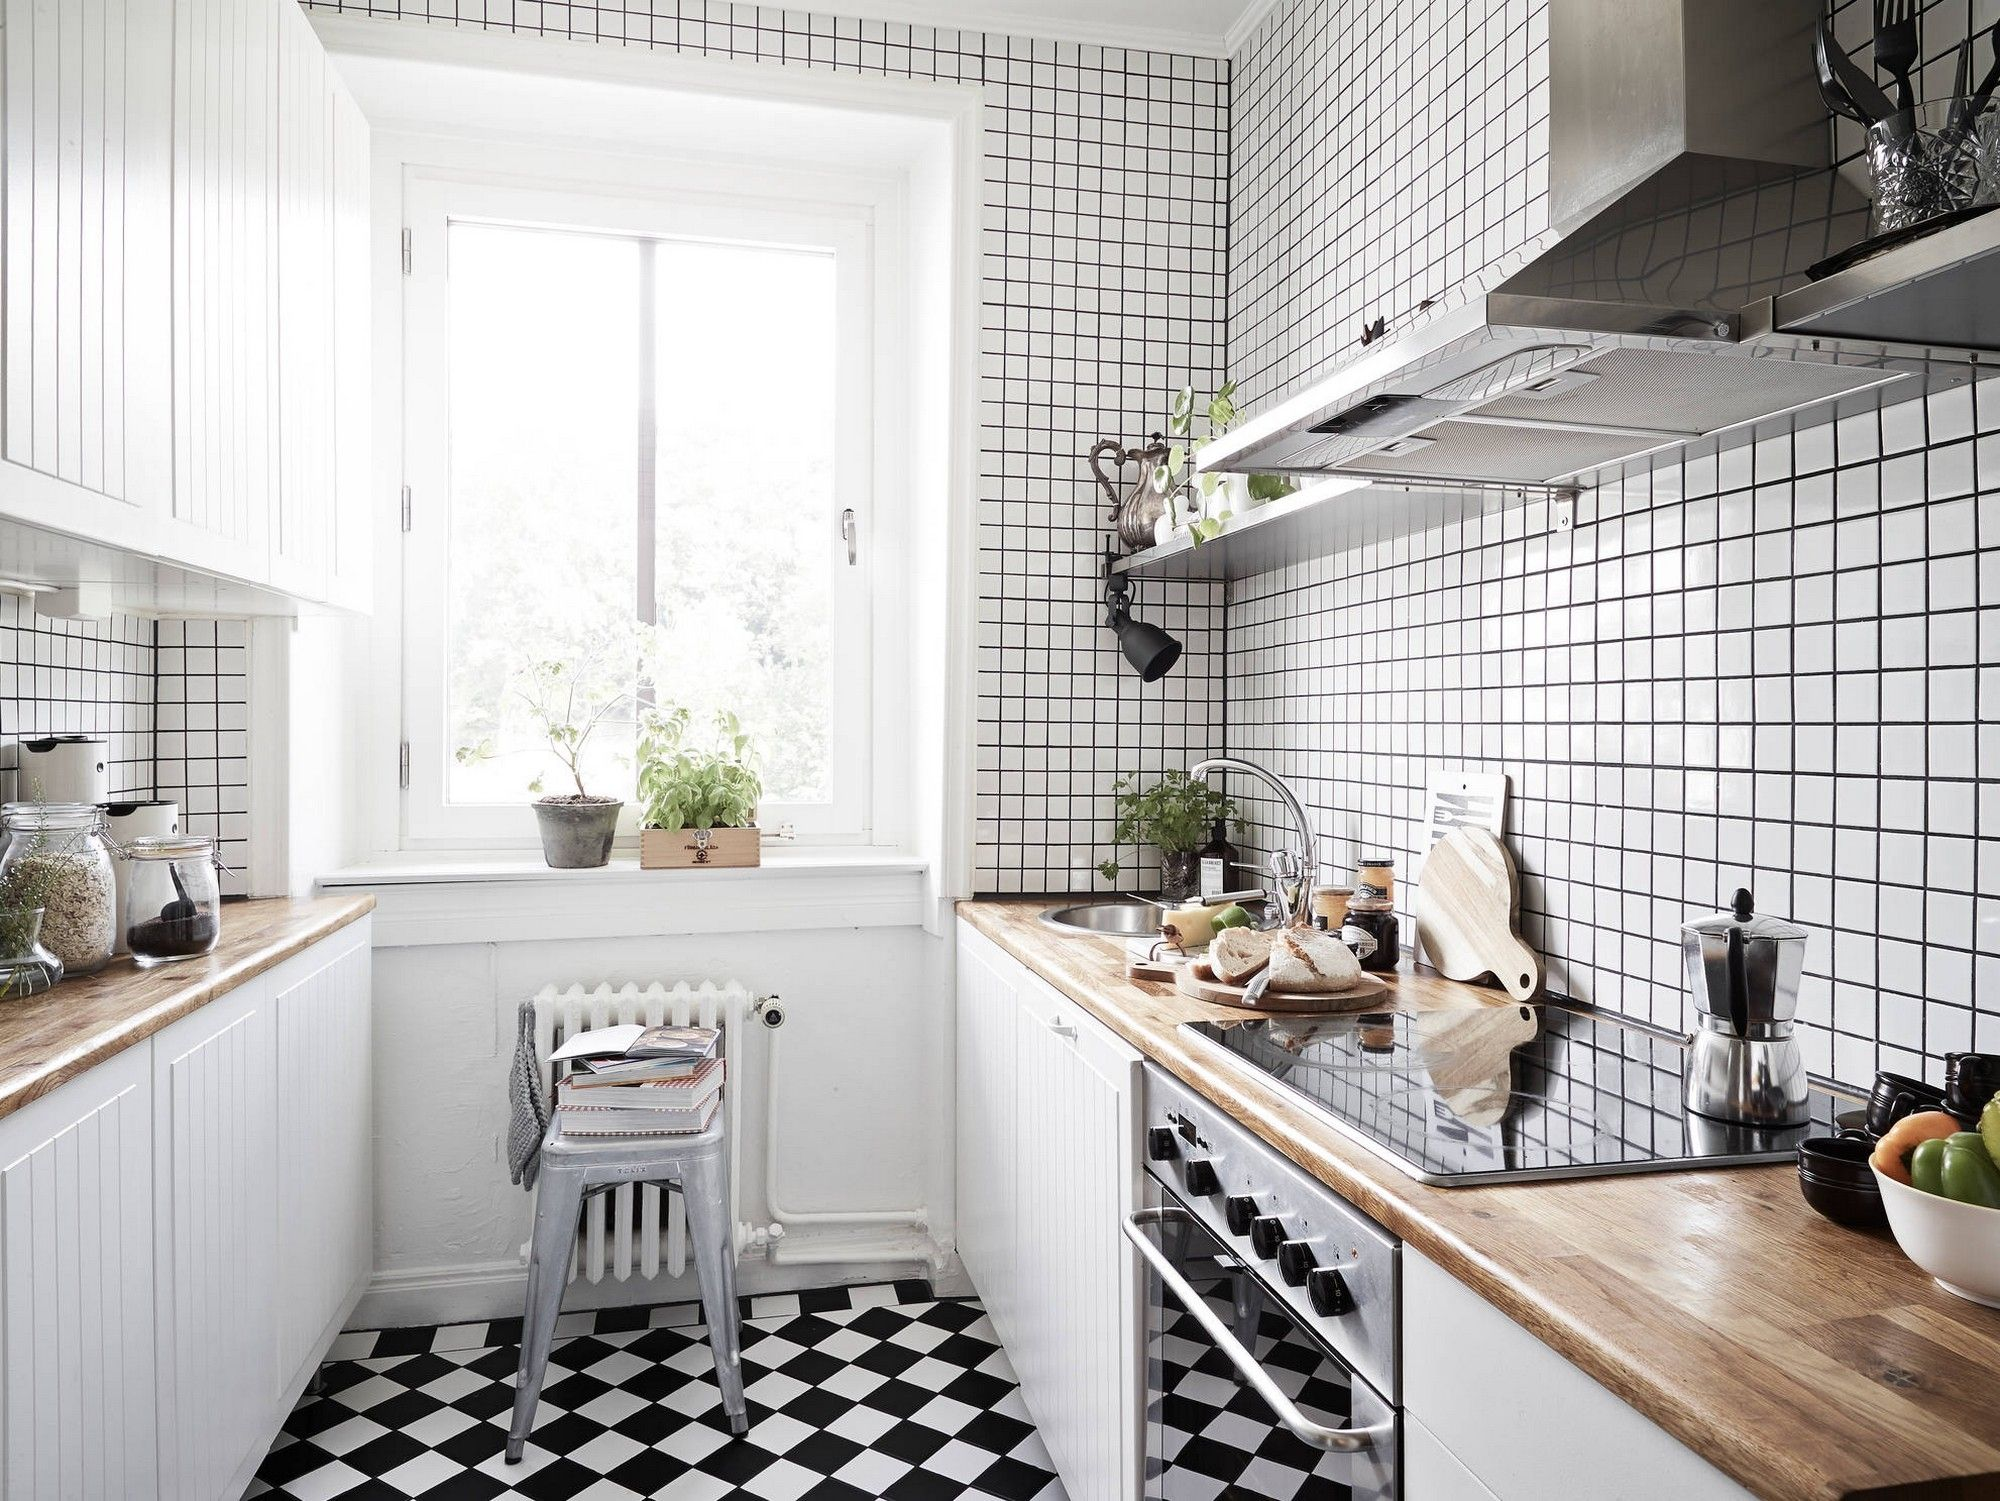 classic kitchen floor tiles black and white | 32nd ...